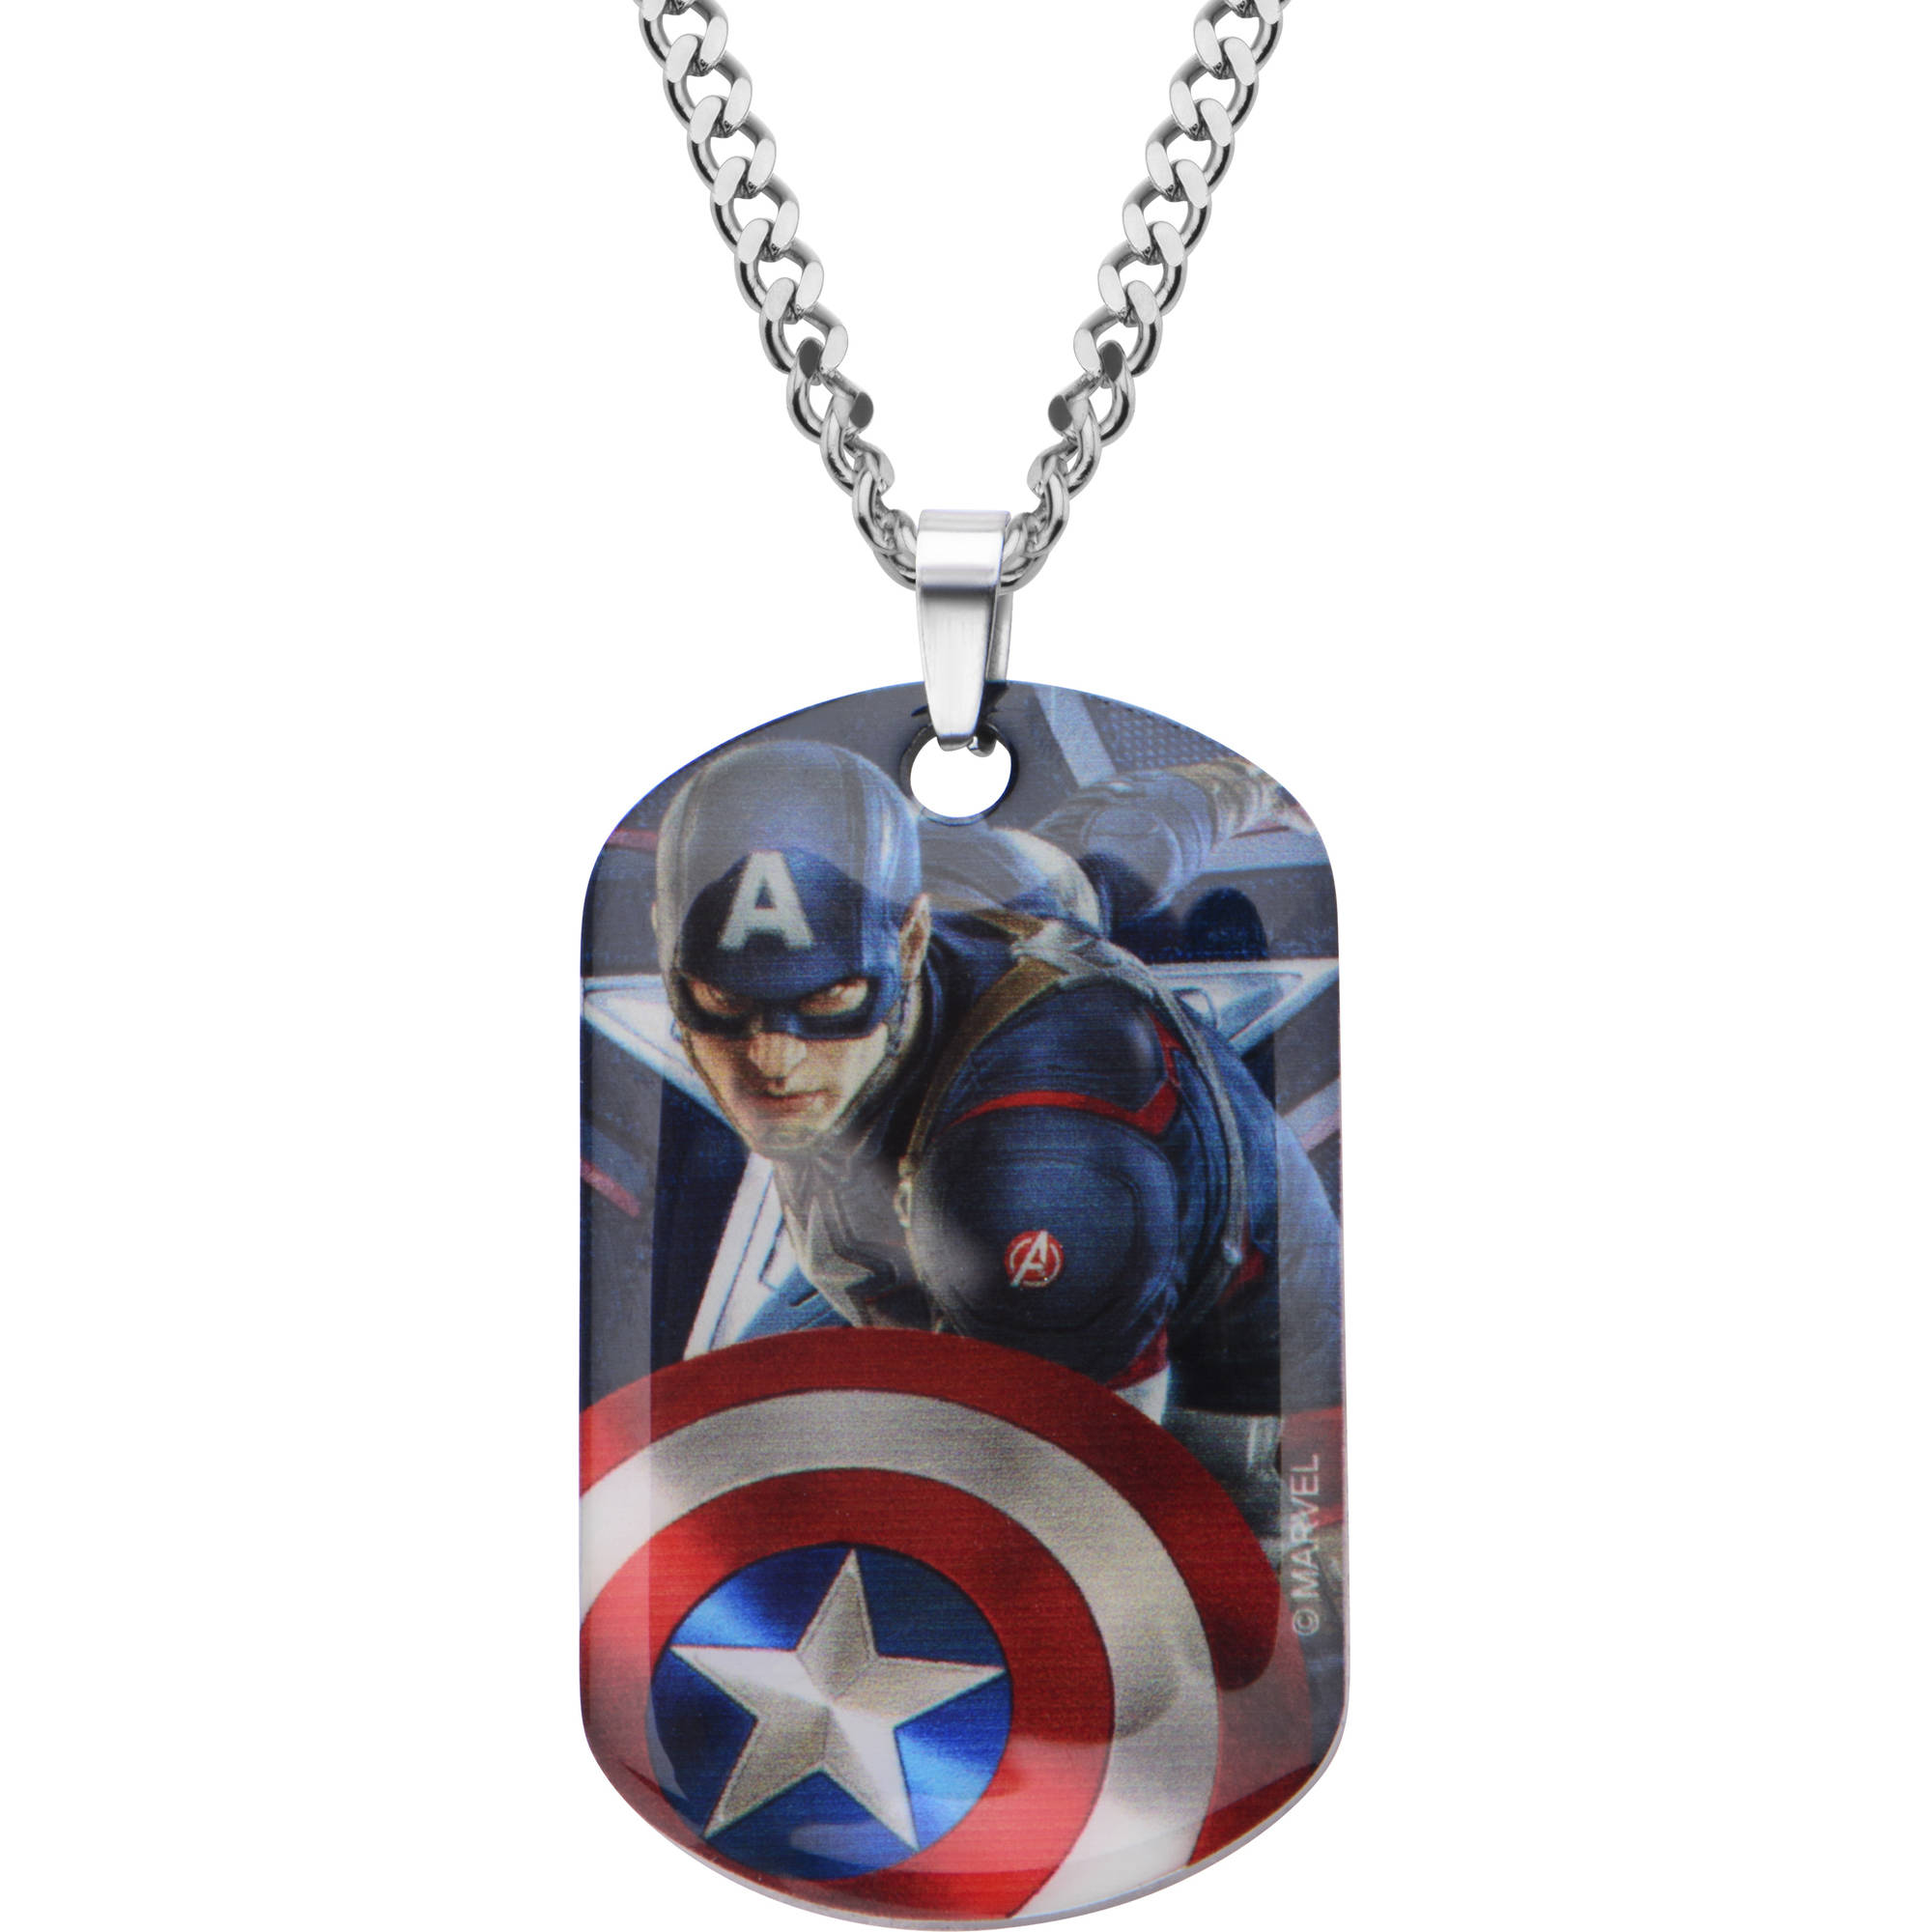 "Marvel Men's Stainless Steel Captain America Dog Tag Pendant, 22"" Chain"